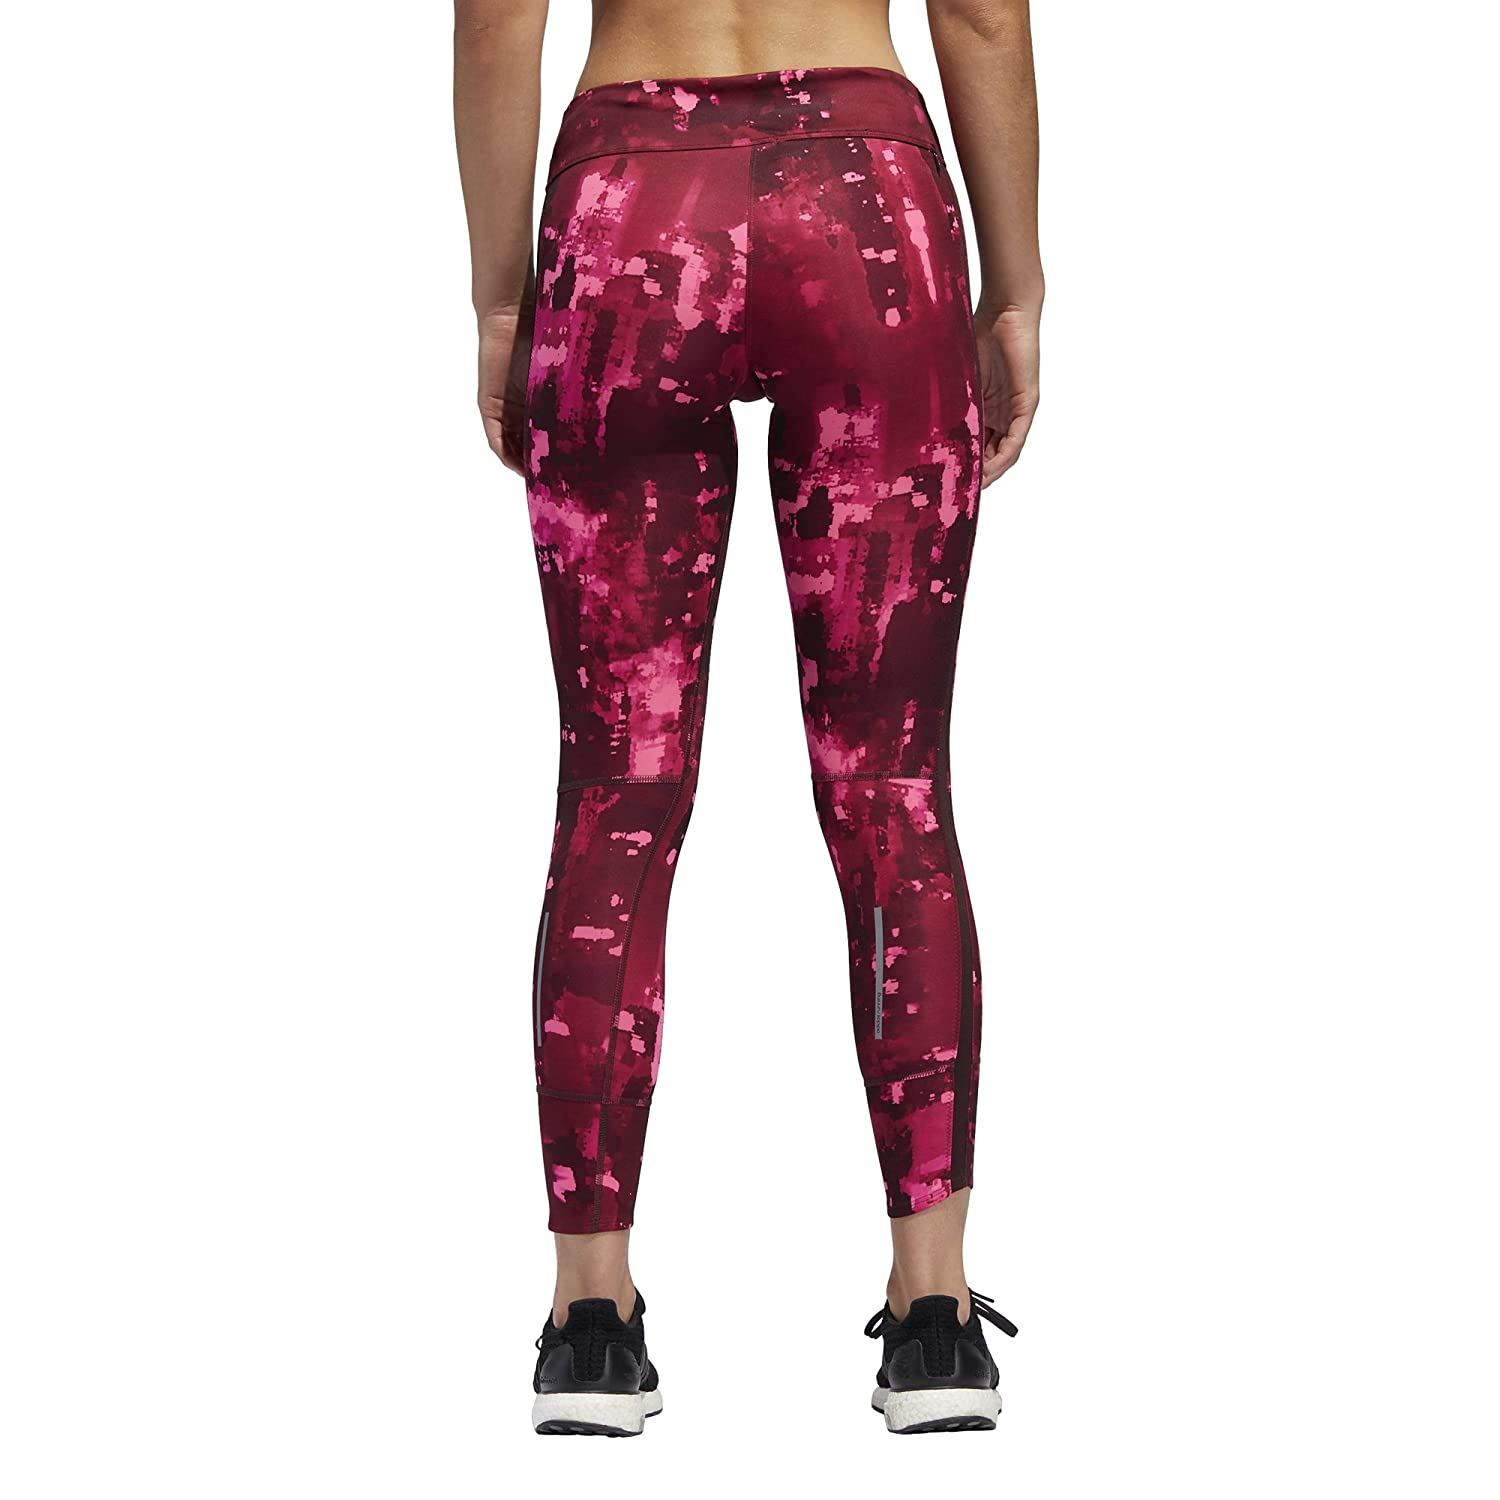 5856833065070d Amazon.com : adidas Running Response City Magnetism 7/8 Tights : Sports &  Outdoors